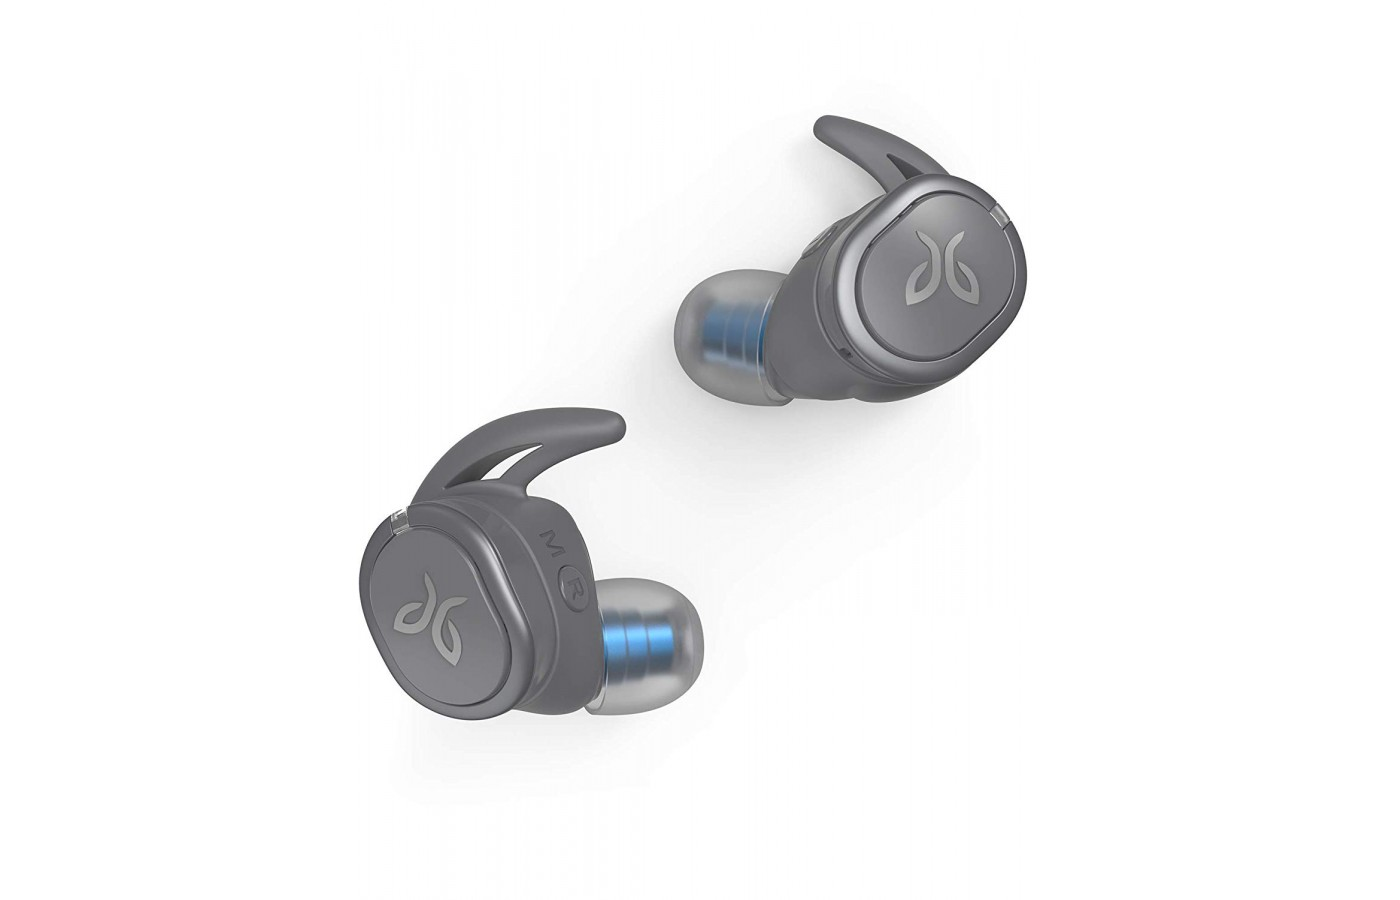 The Jaybird Run headphones are truly wireless headphones that do not have a wire or cord to interfere with a user's listening pleasure.